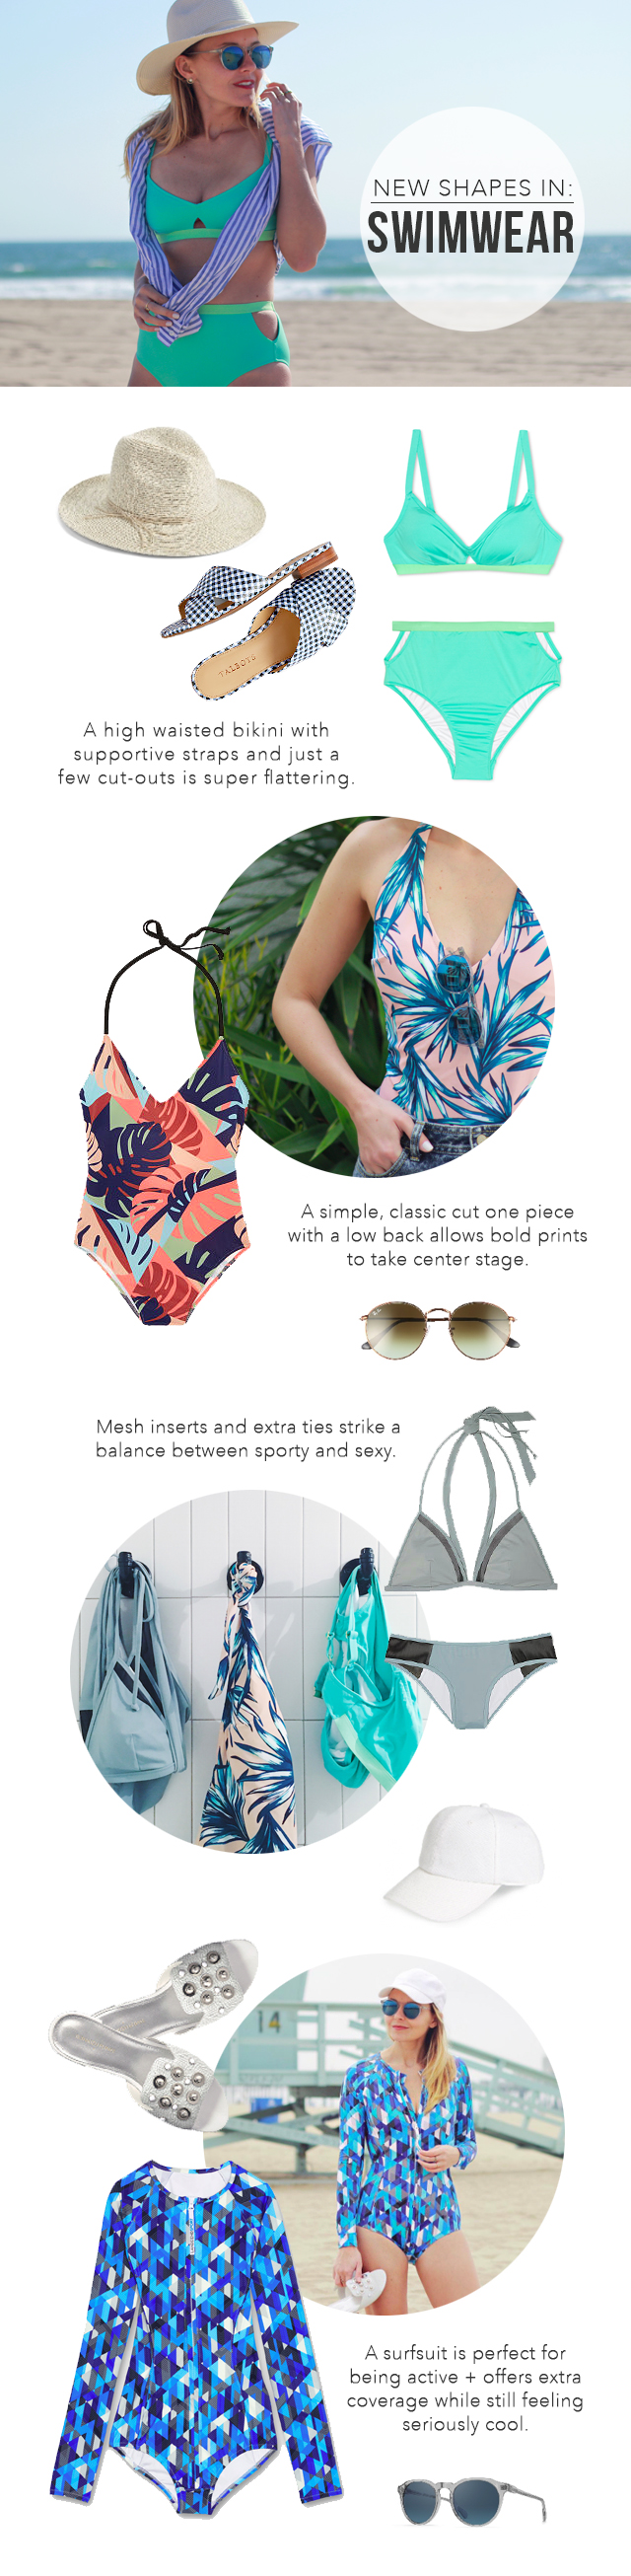 The Steele Maiden: New Swimwear Silhouettes to Try this Summer